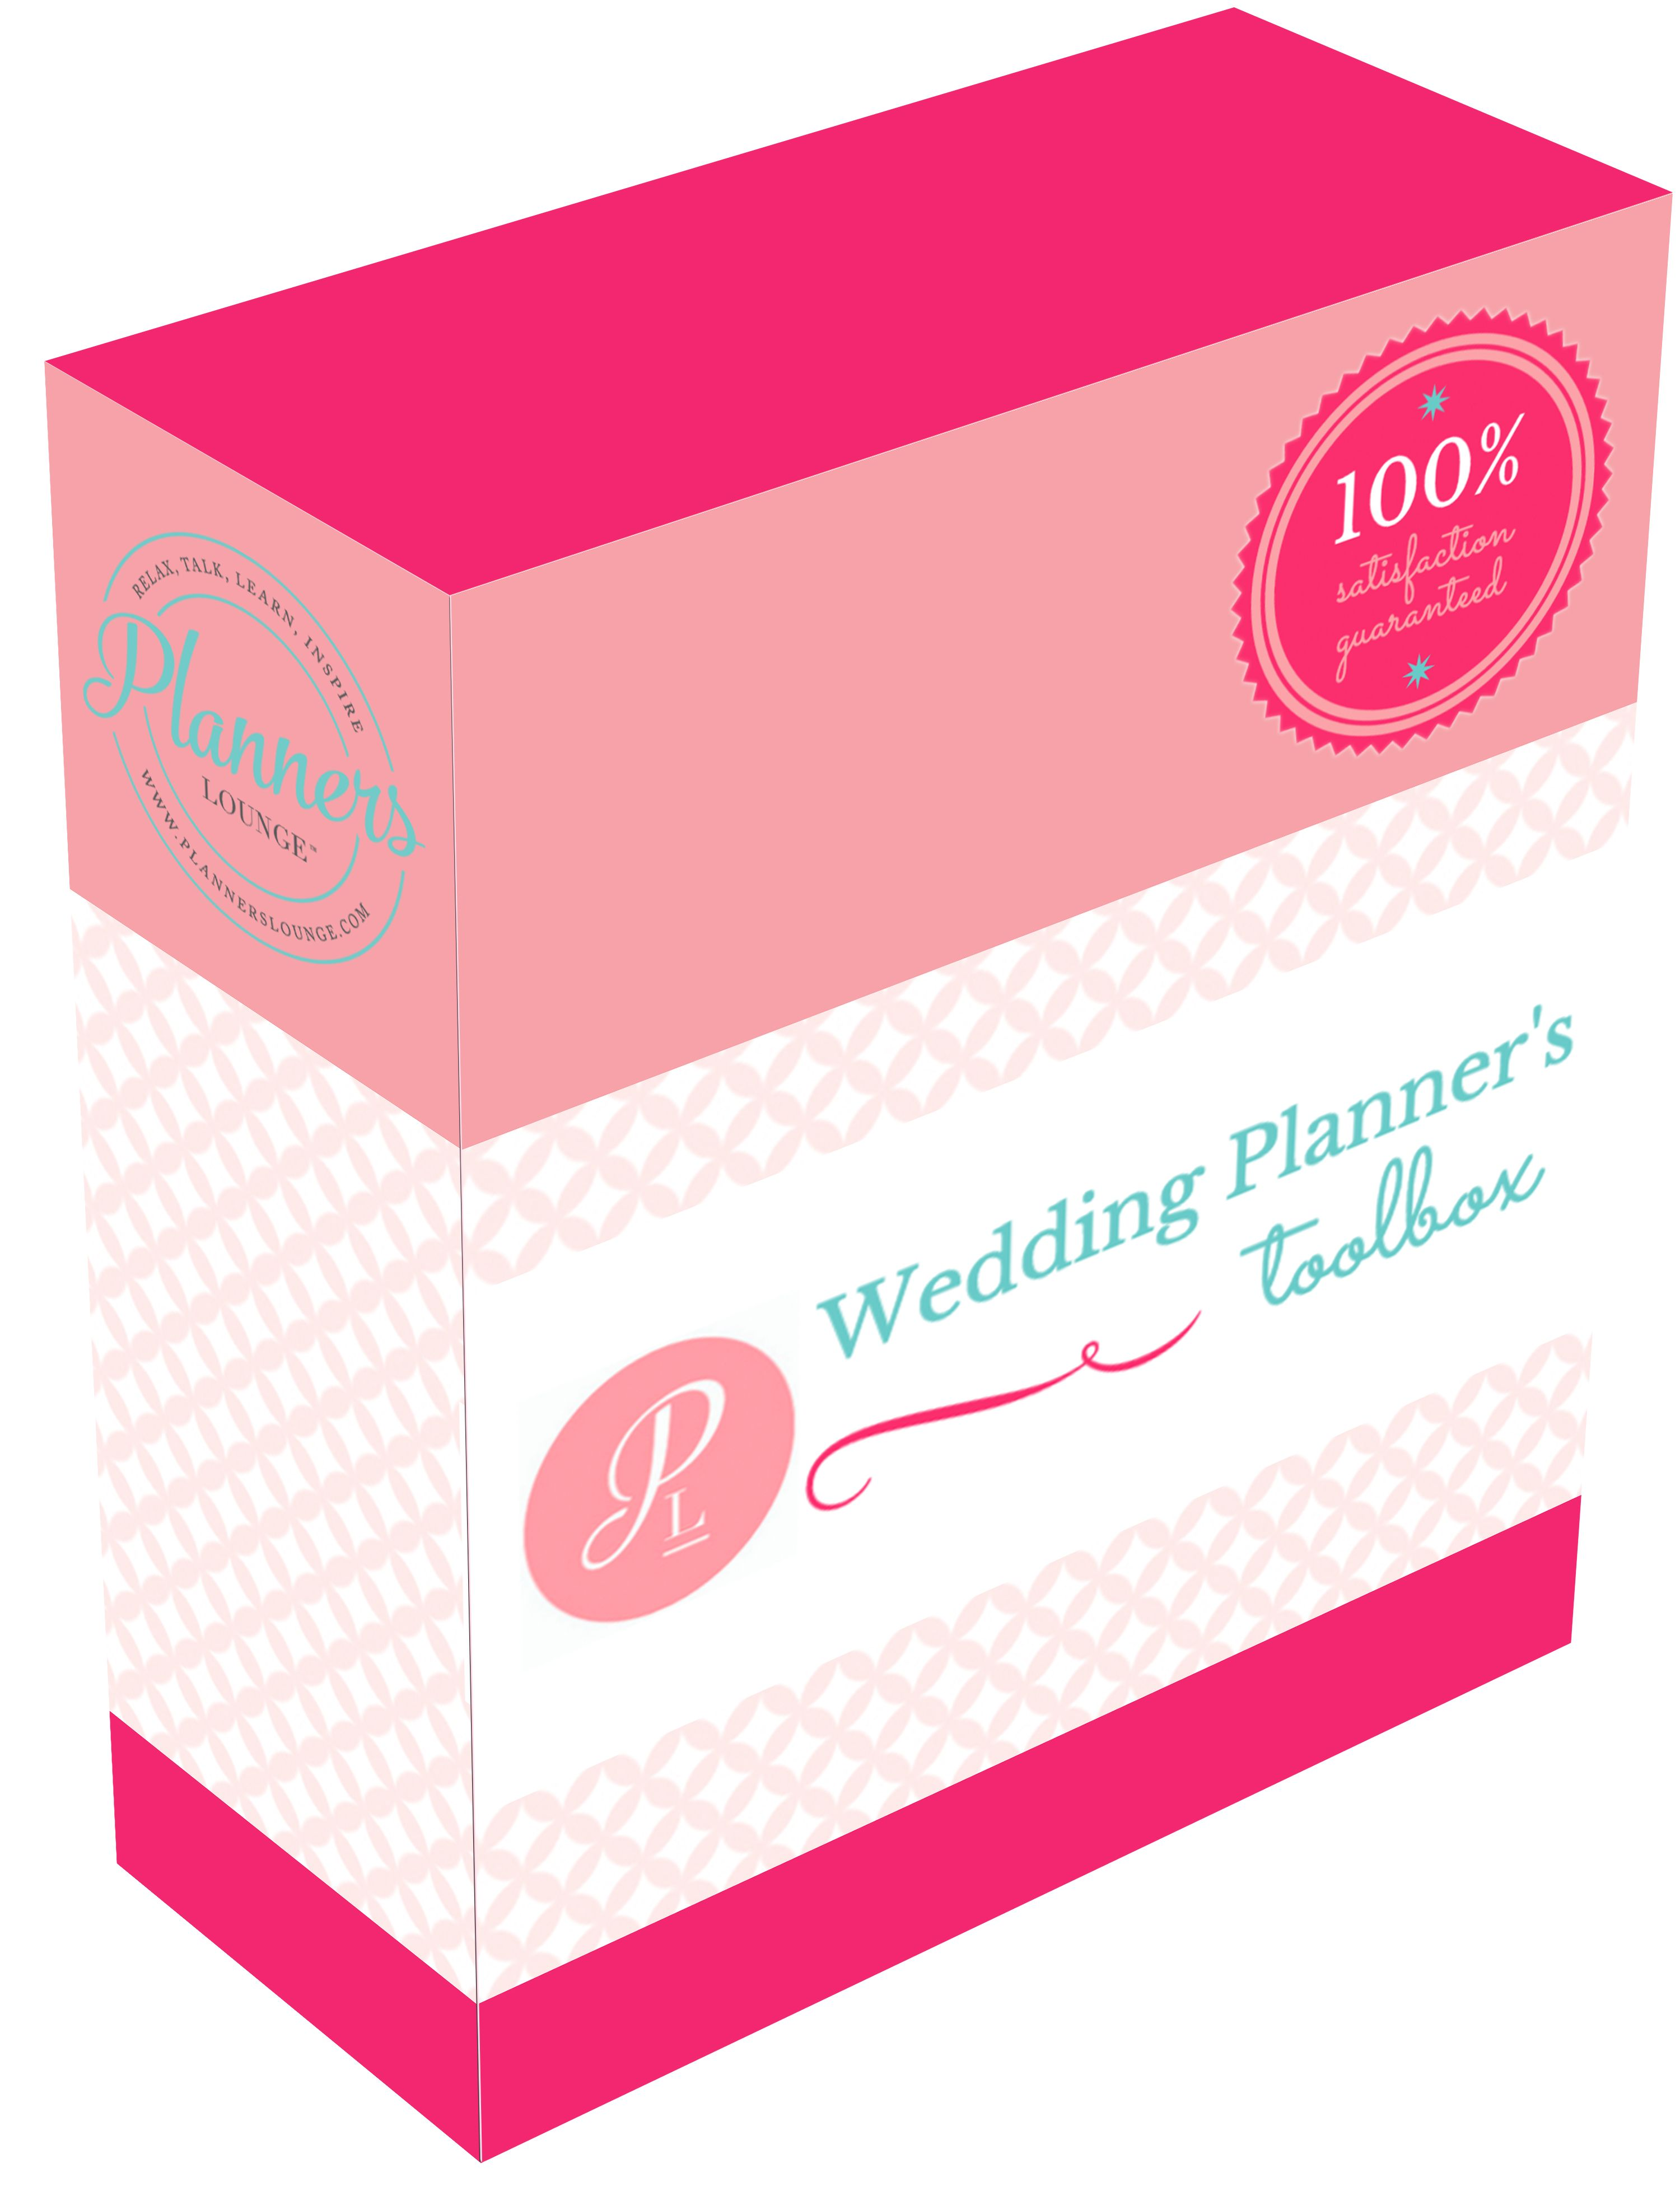 The Wedding Planner S Toolbox Is A Complete Set Of